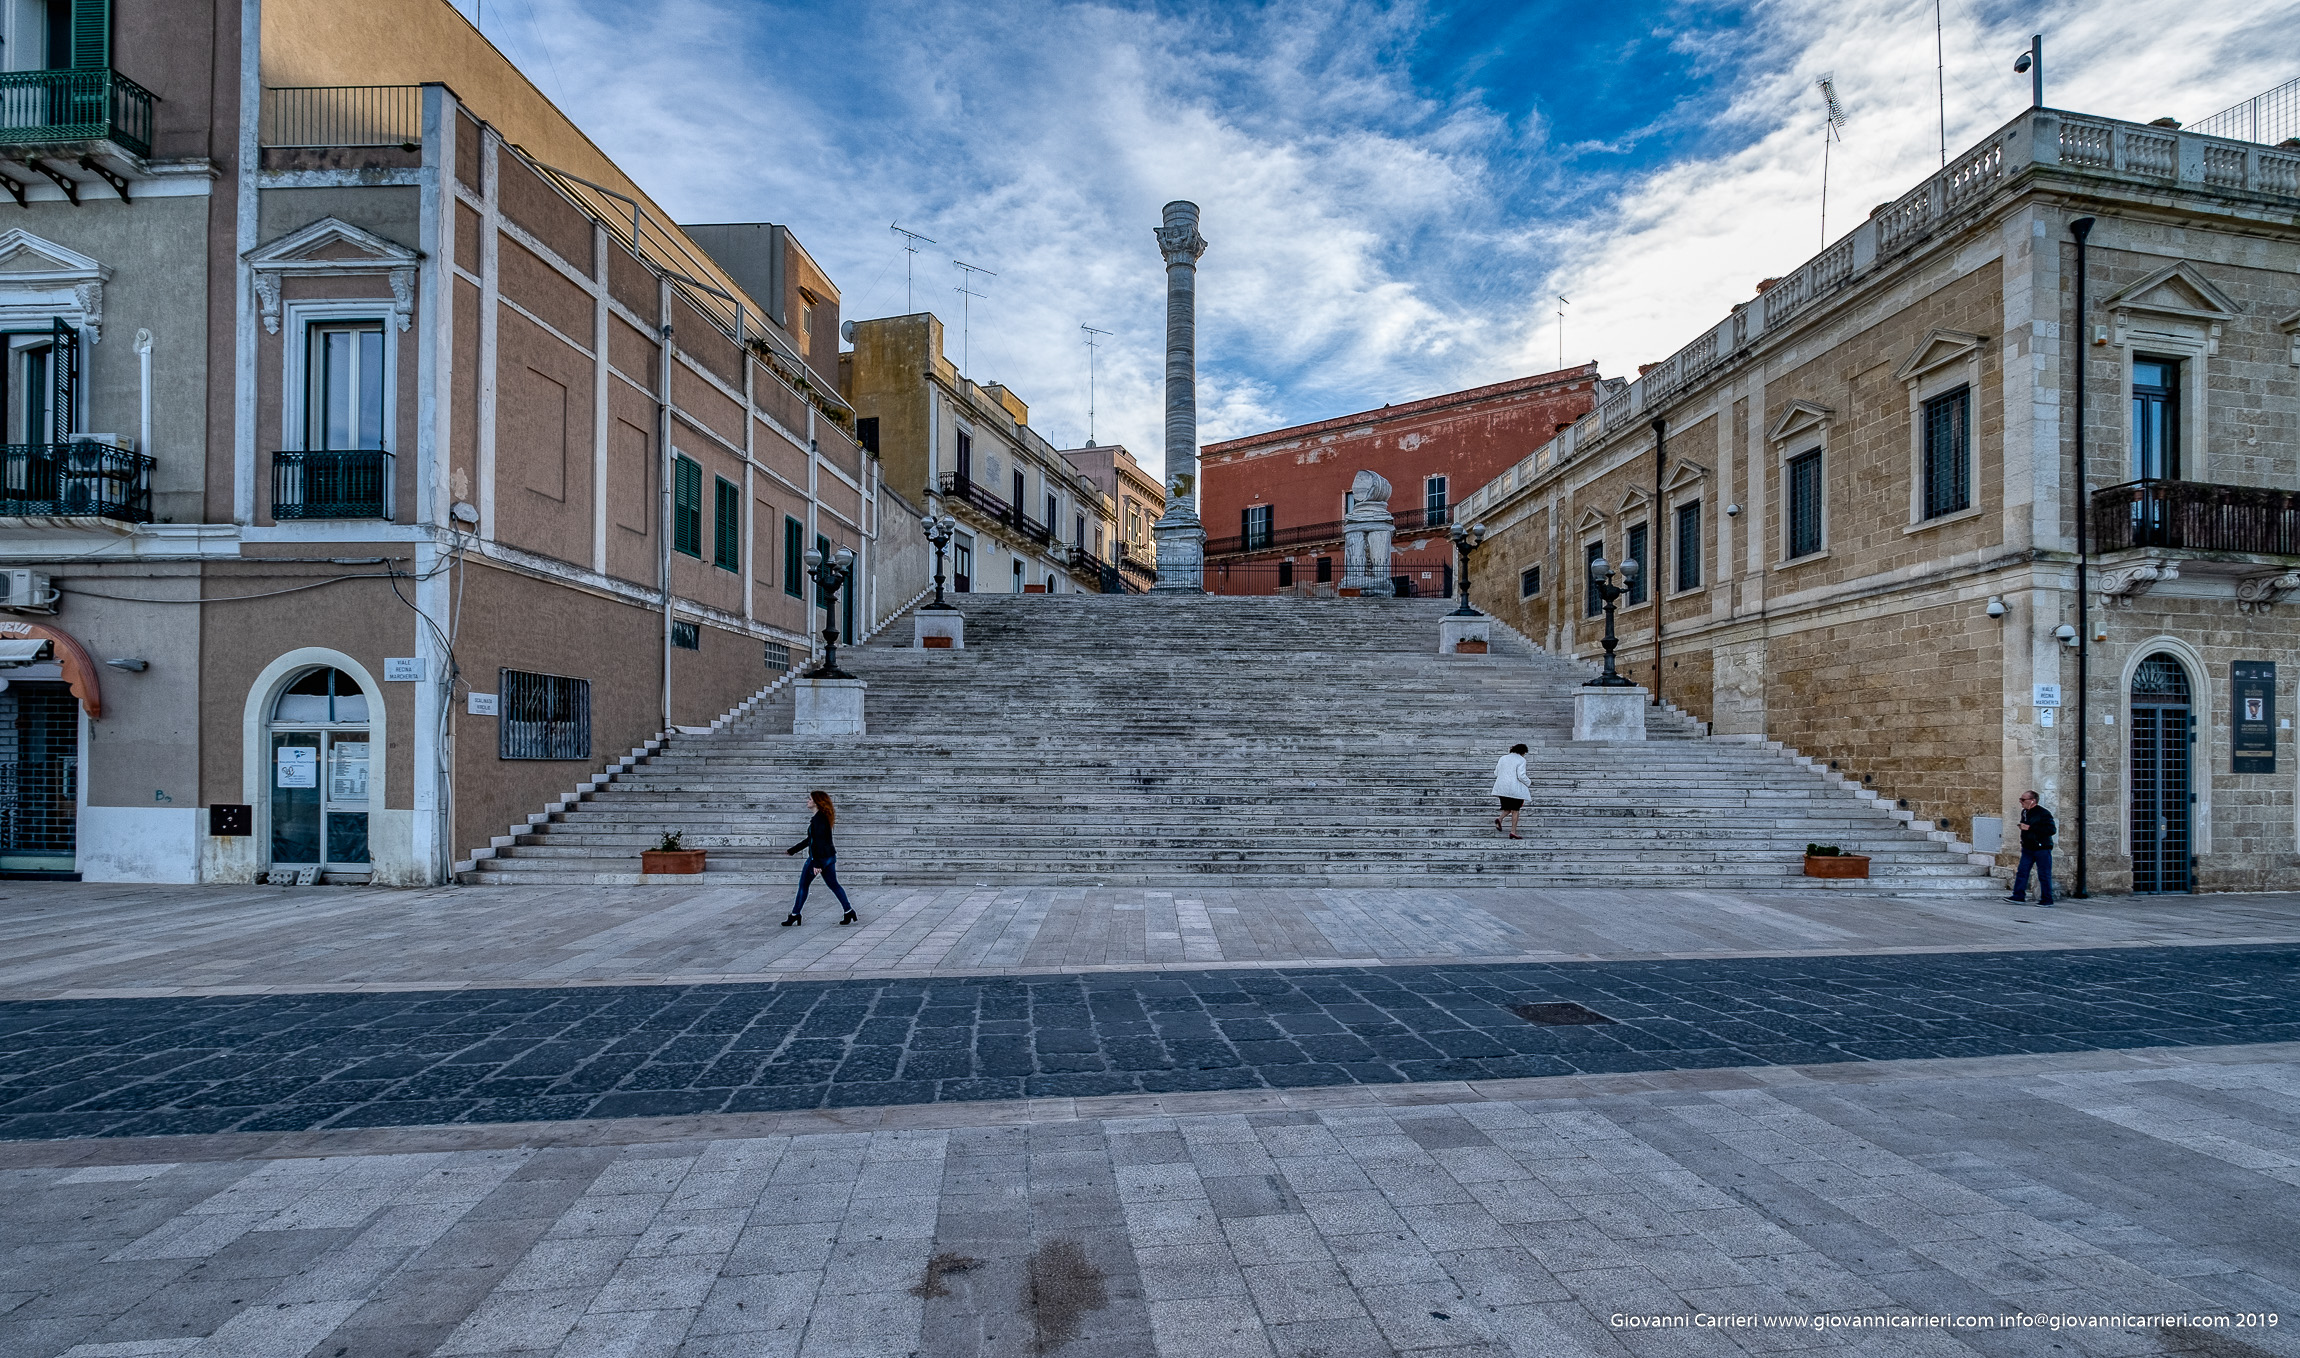 Photographs of Brindisi